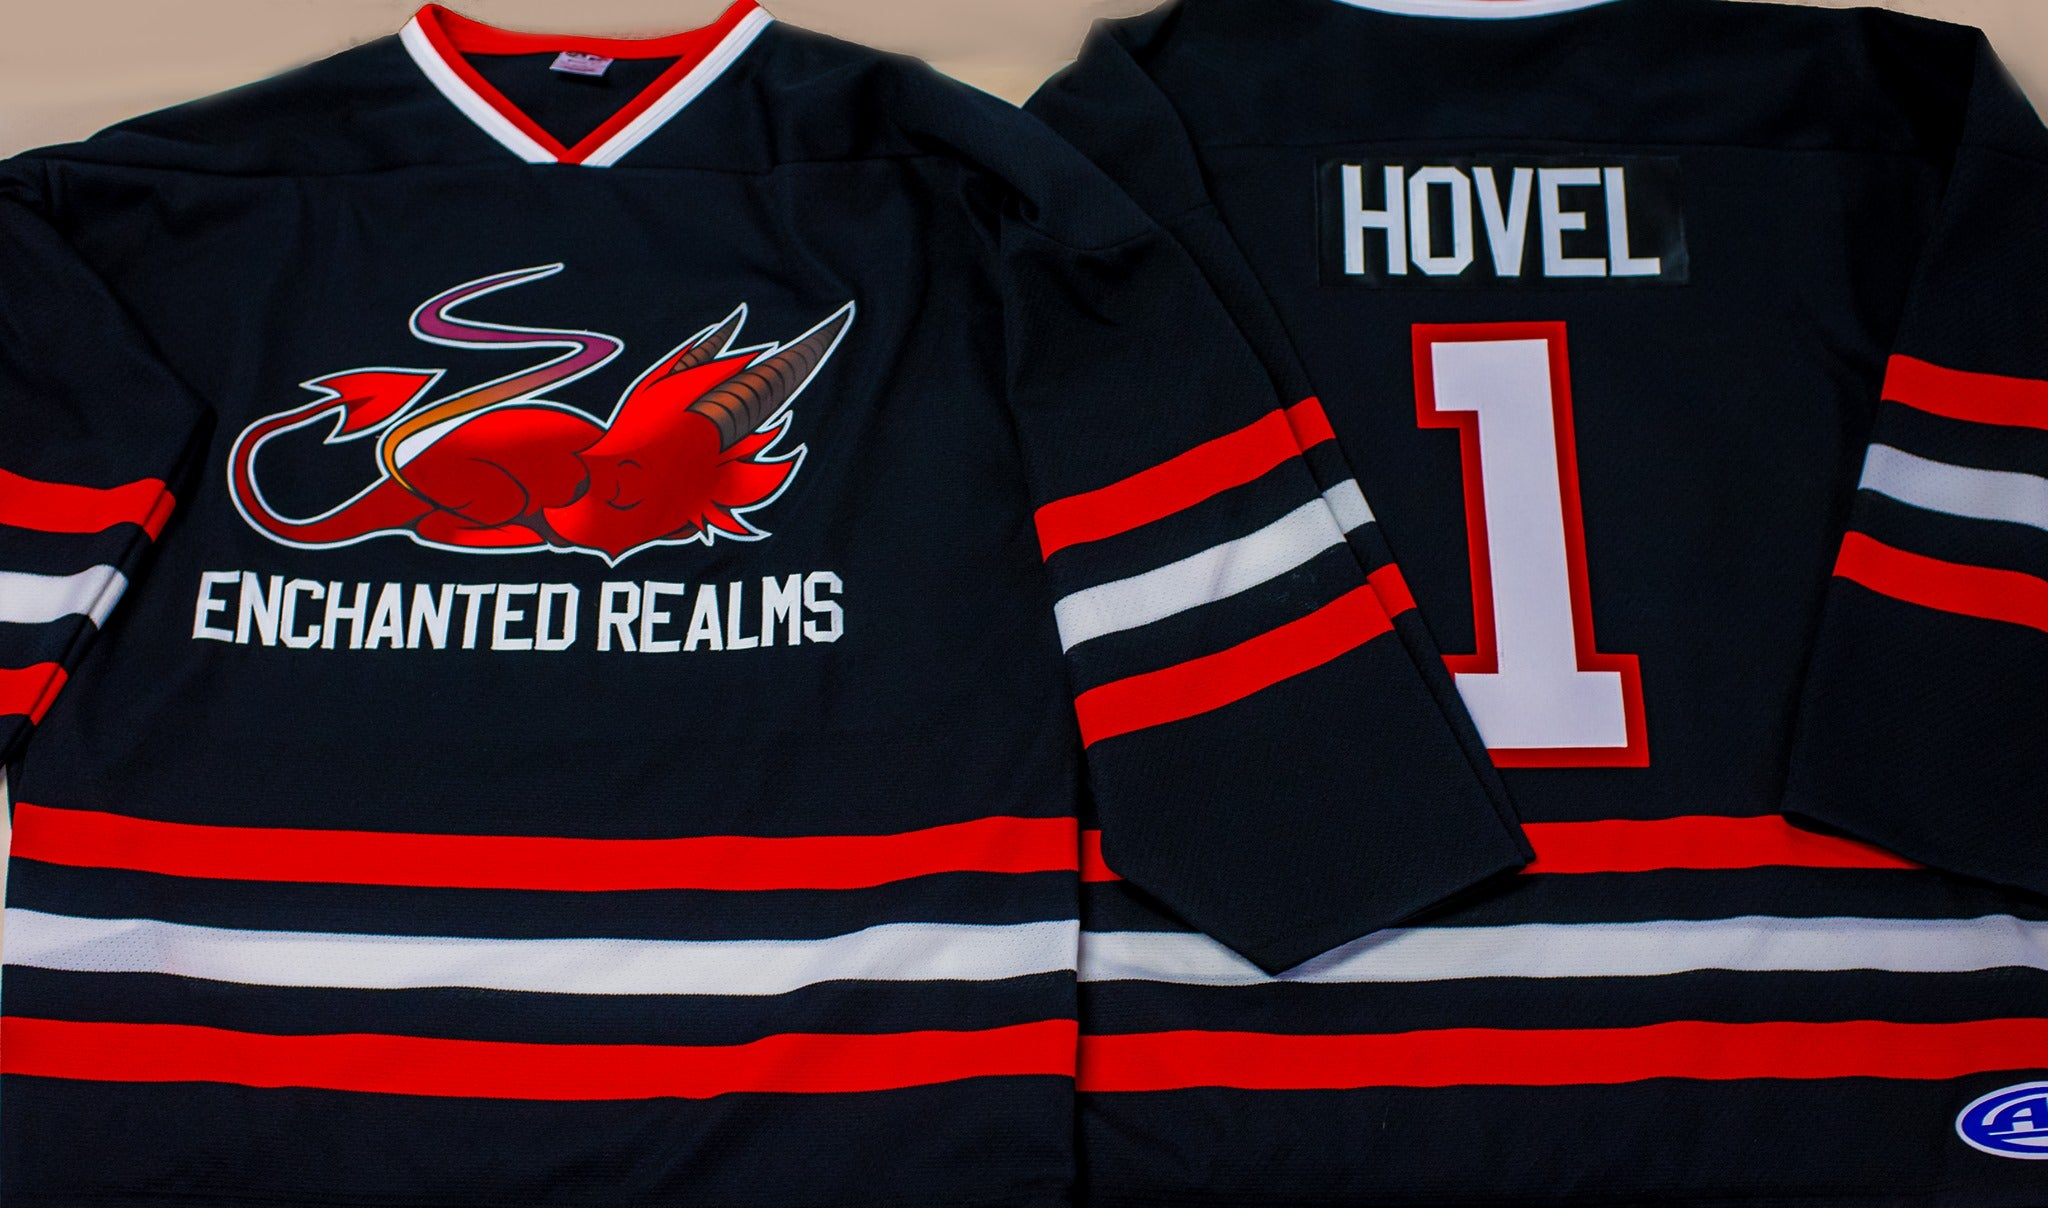 Enchanted Realms Hockey Jersey | Enchanted Realms Games & Gifts